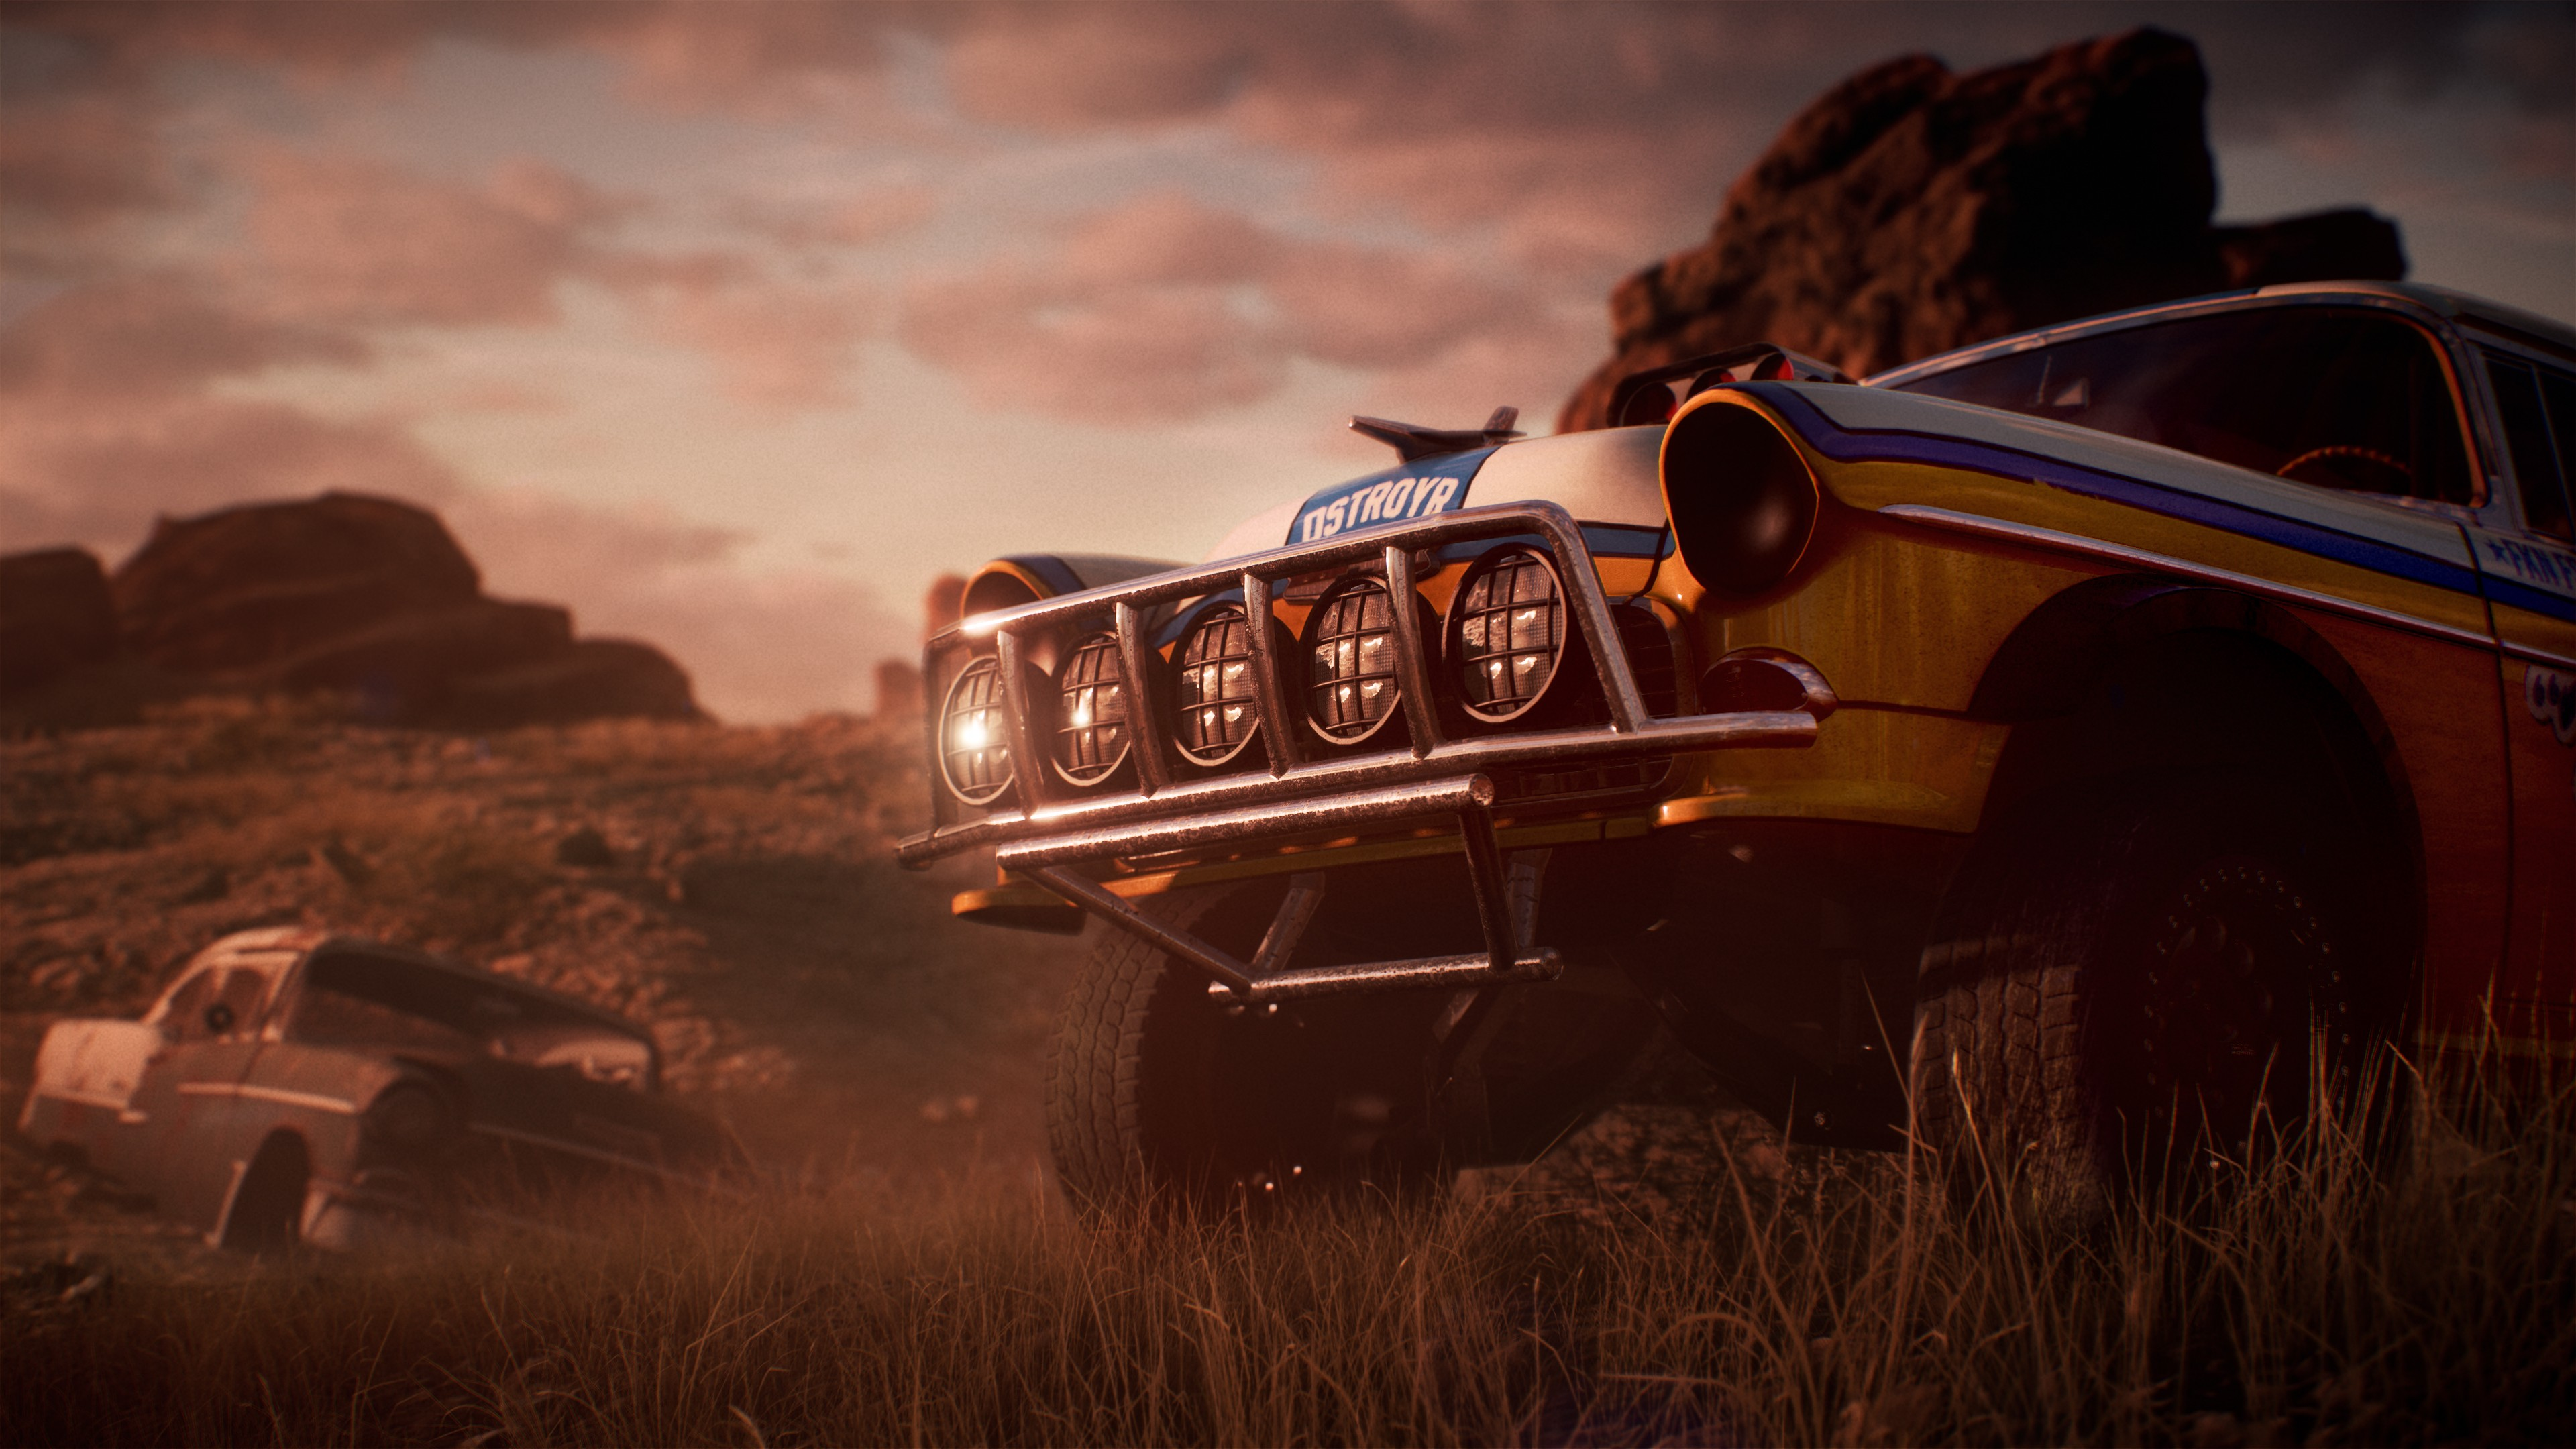 Need for Speed Payback 6 - دانلود بازی نید فور اسپید پلی بک Need for Speed Payback